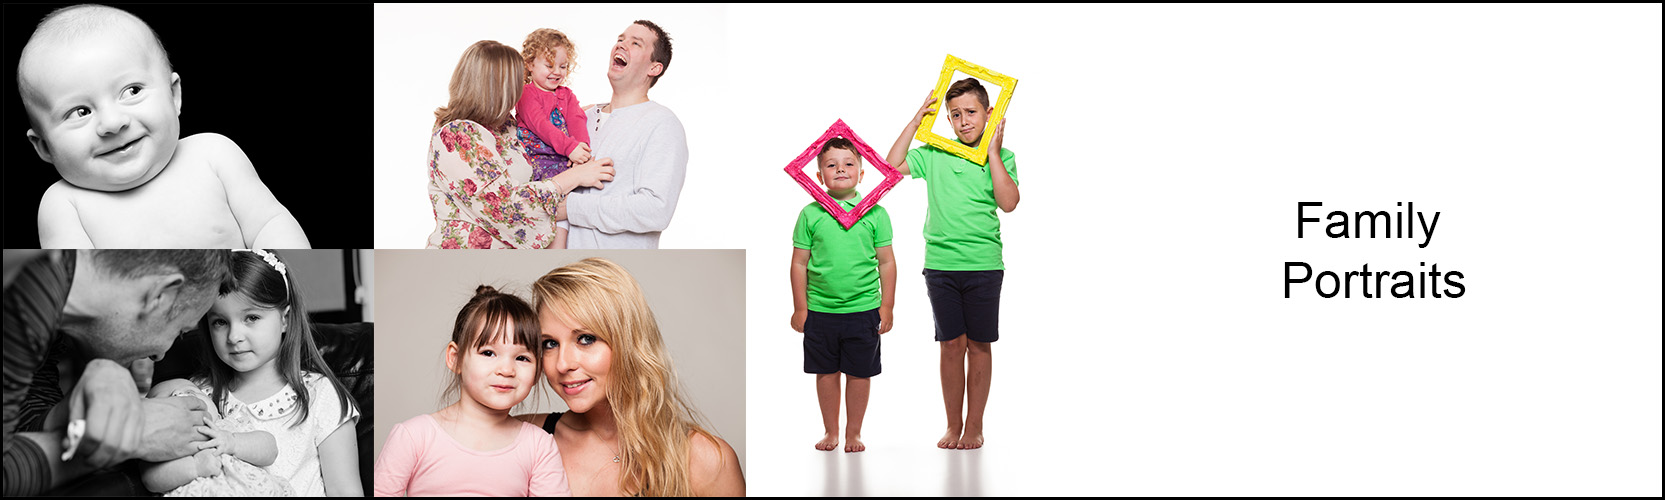 Family Portraits - Info Banner Image - Services & Prices Page